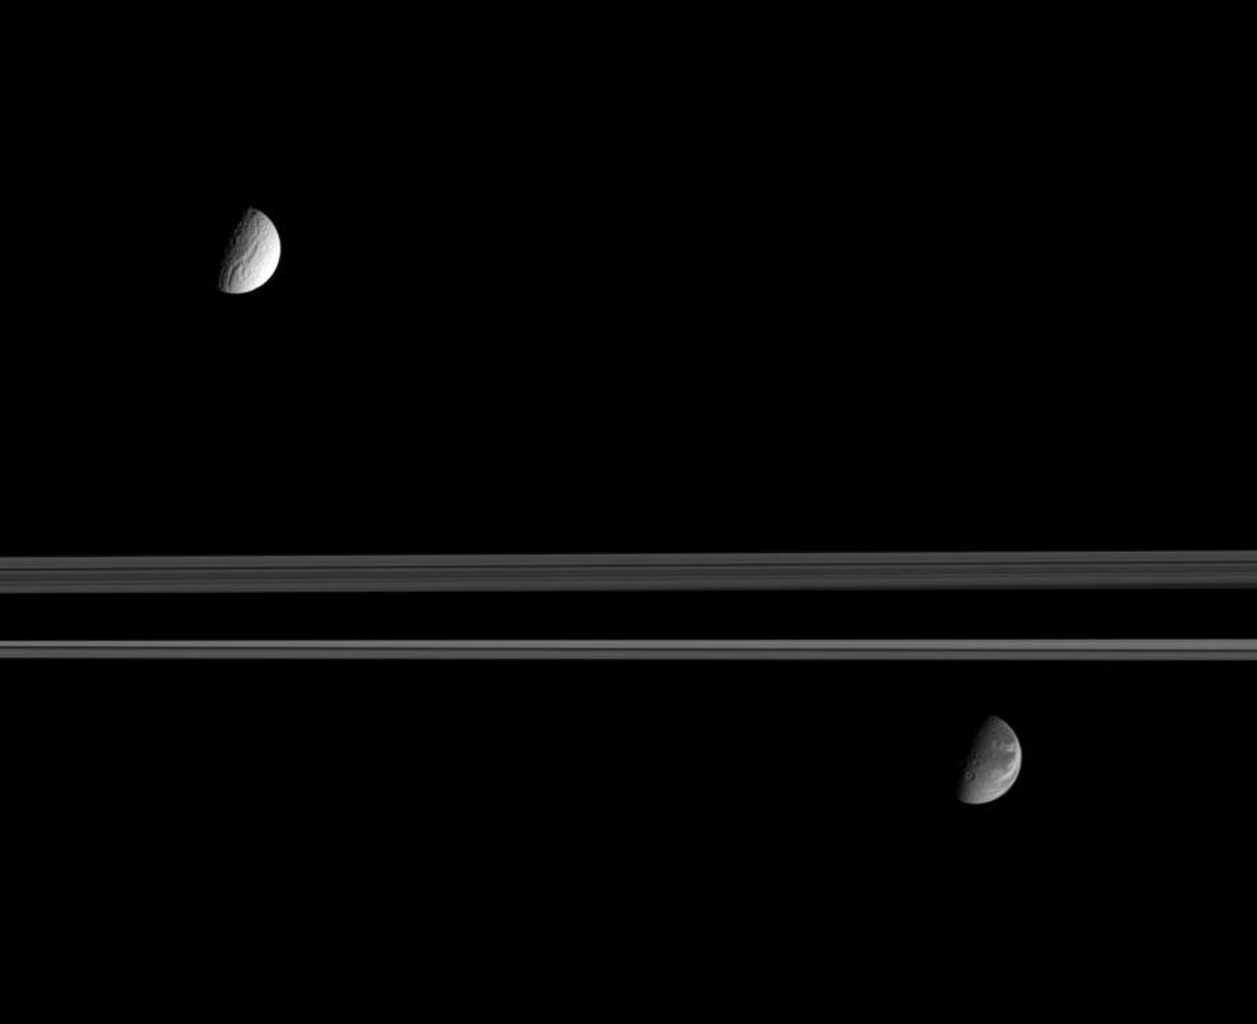 Saturn's expansive rings separate the moon's Tethys (at the top) from Dione (at the bottom). This image was taken in visible light with NASA's Cassini spacecraft's narrow-angle camera on Sept. 12, 2005.